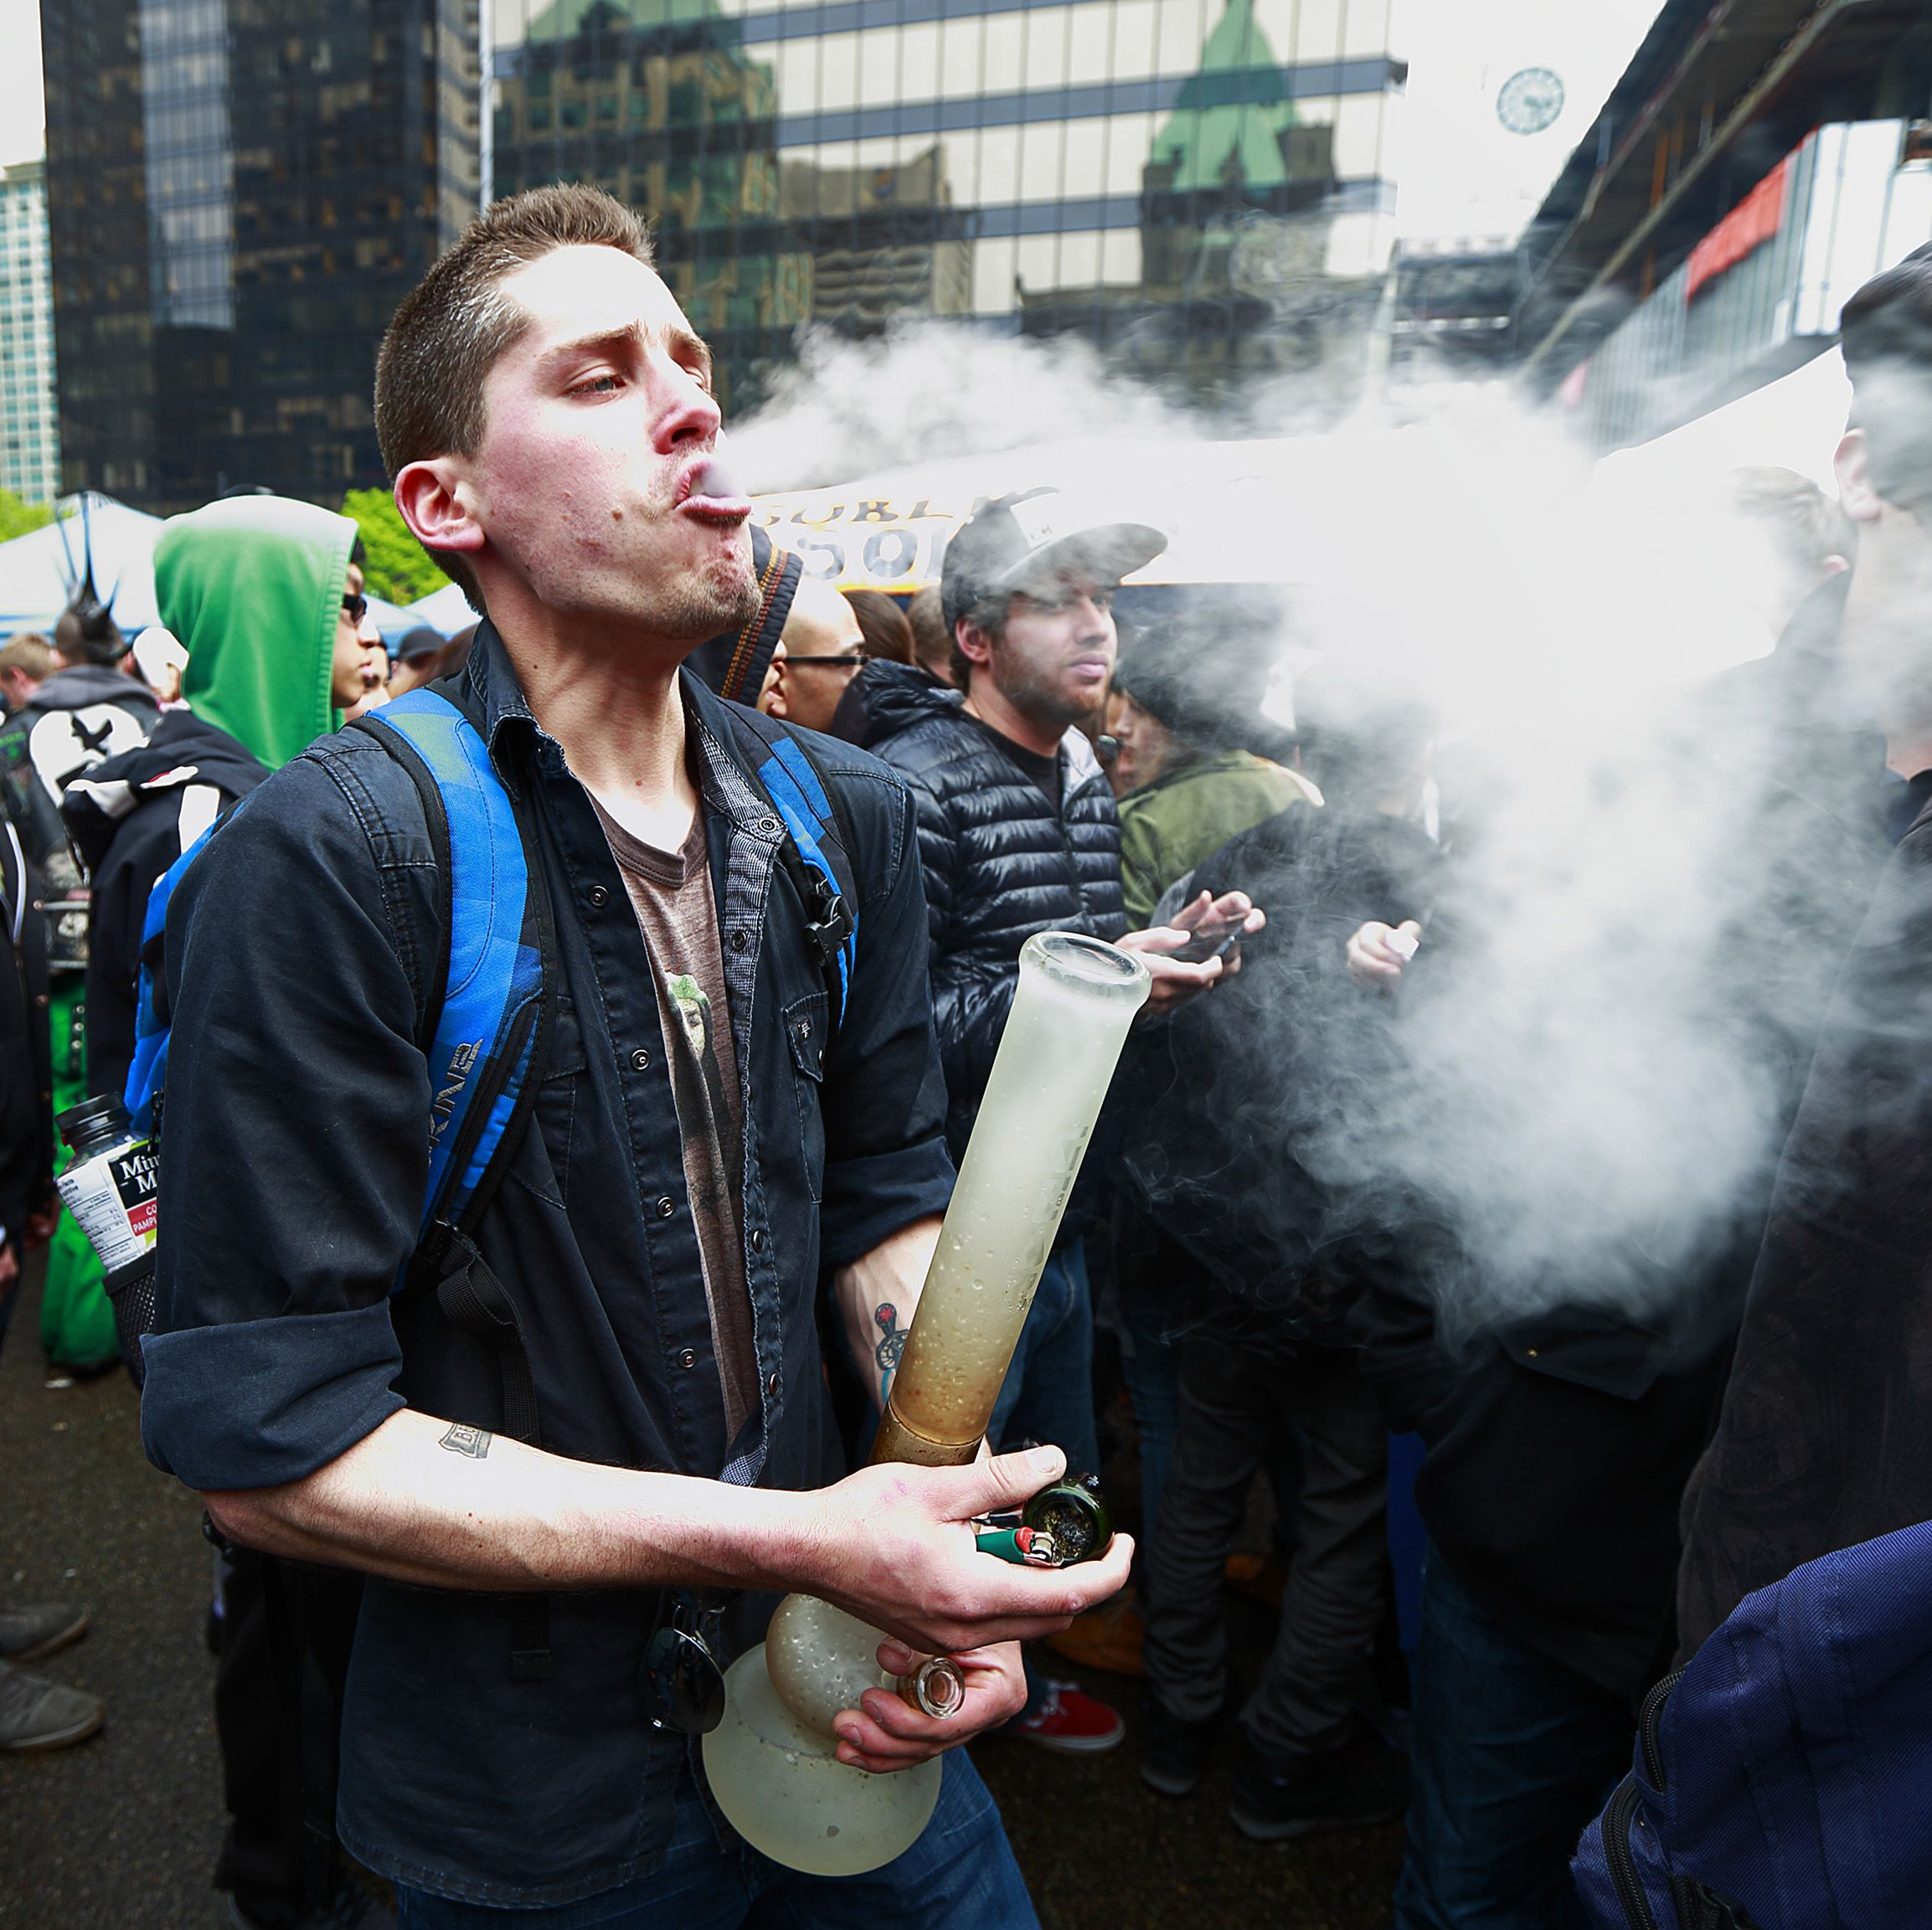 Canada Just Legalized Recreational Marijuana. Here's What That Means for You.